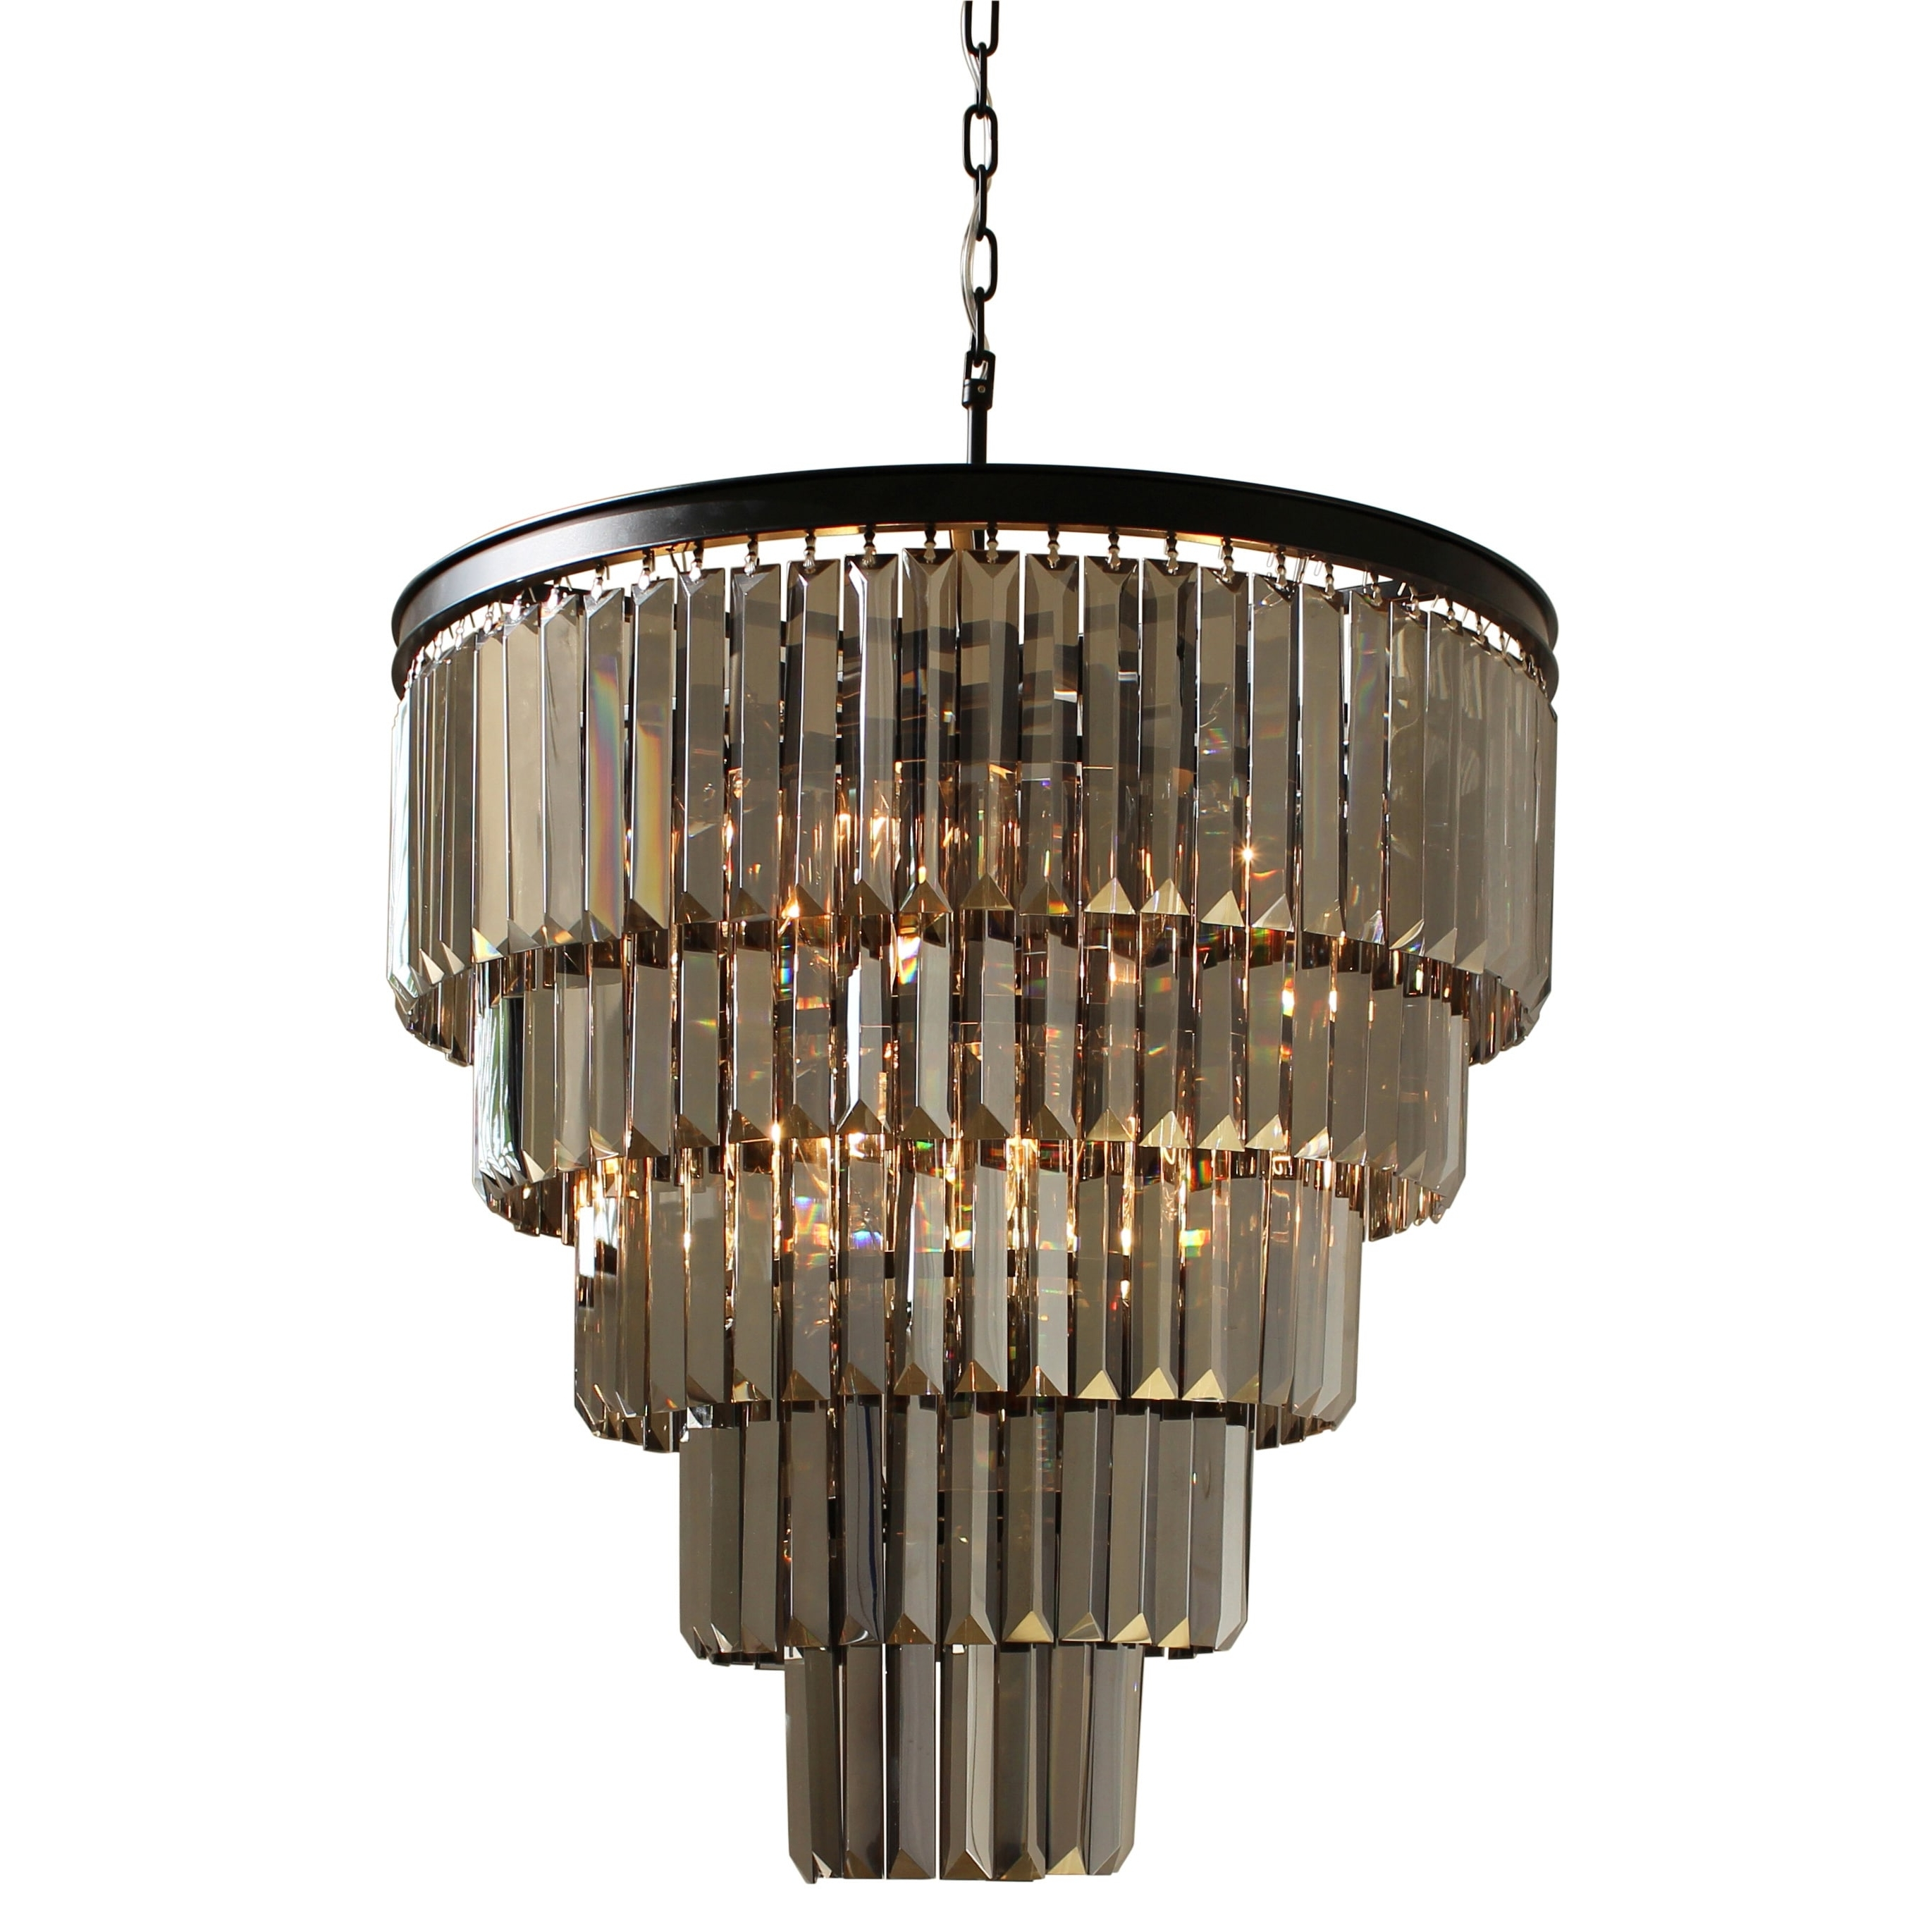 Smoked Glass Chandelier Regarding Preferred D'angelo 5 Tier Iron Round Fringe Crystal Smoked Glass Chandelier (View 8 of 15)